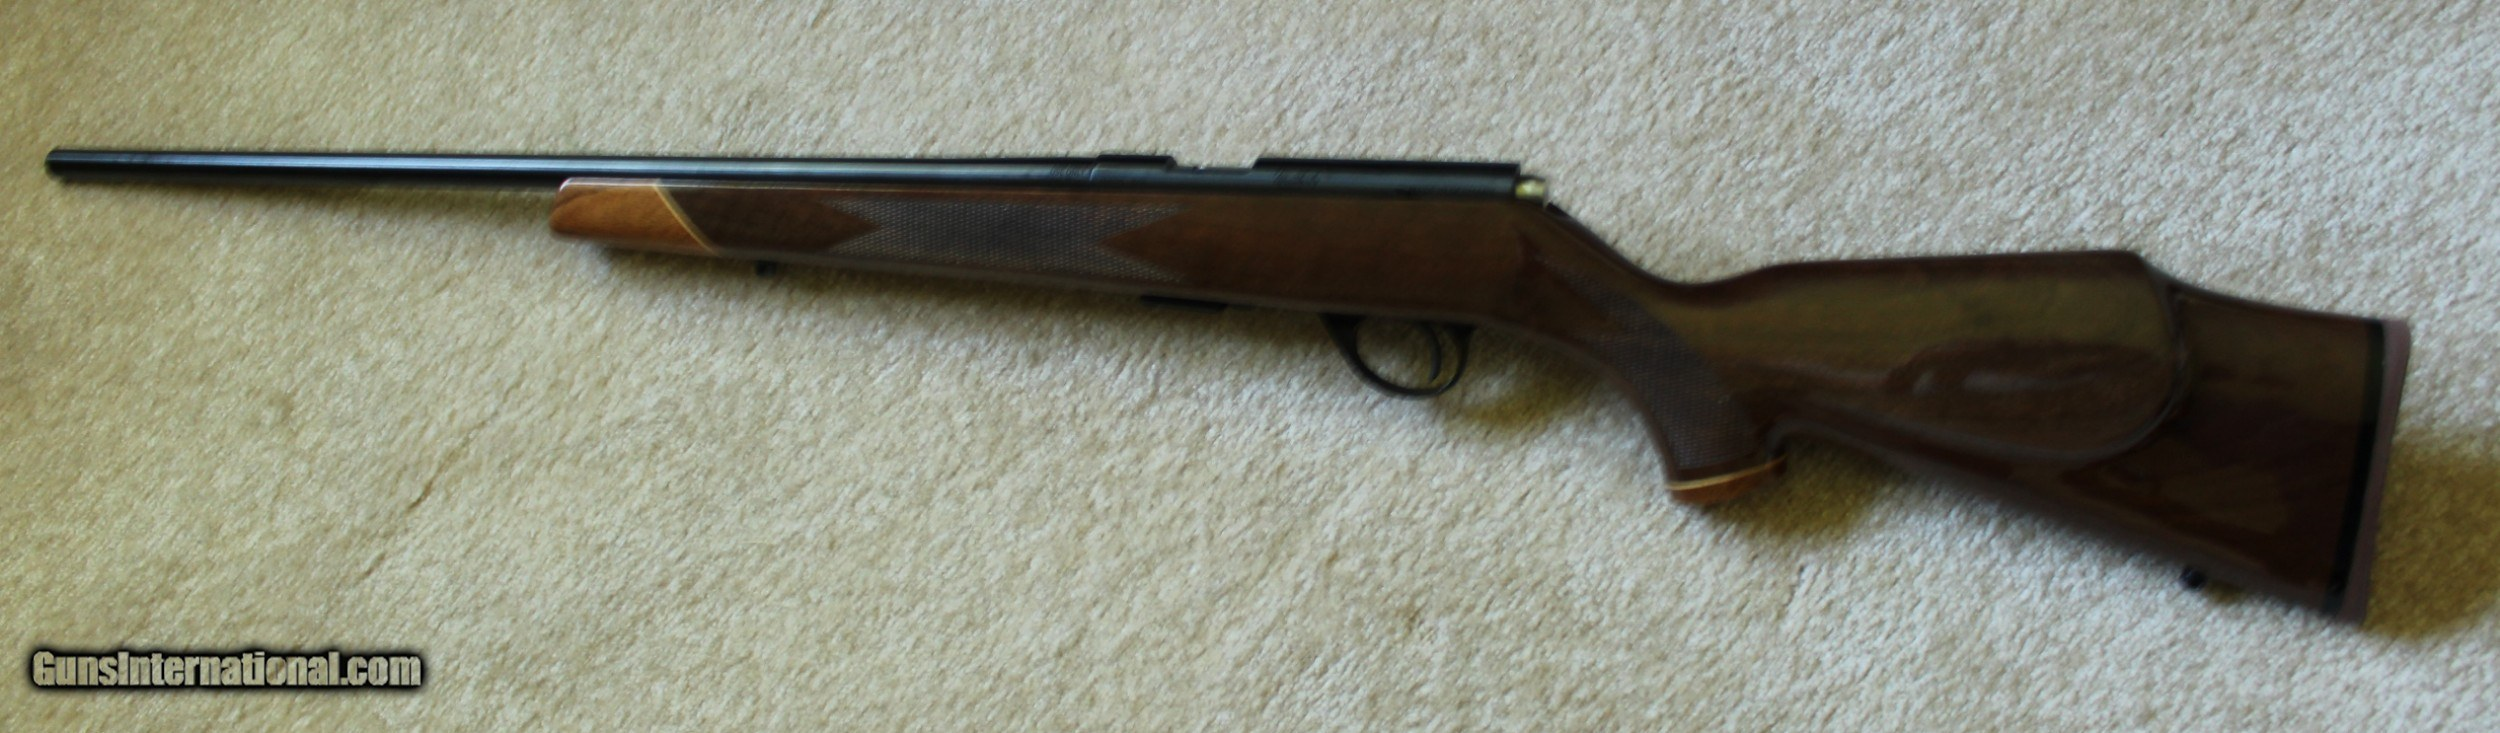 Weatherby XXII Anschutz 22LR for sale